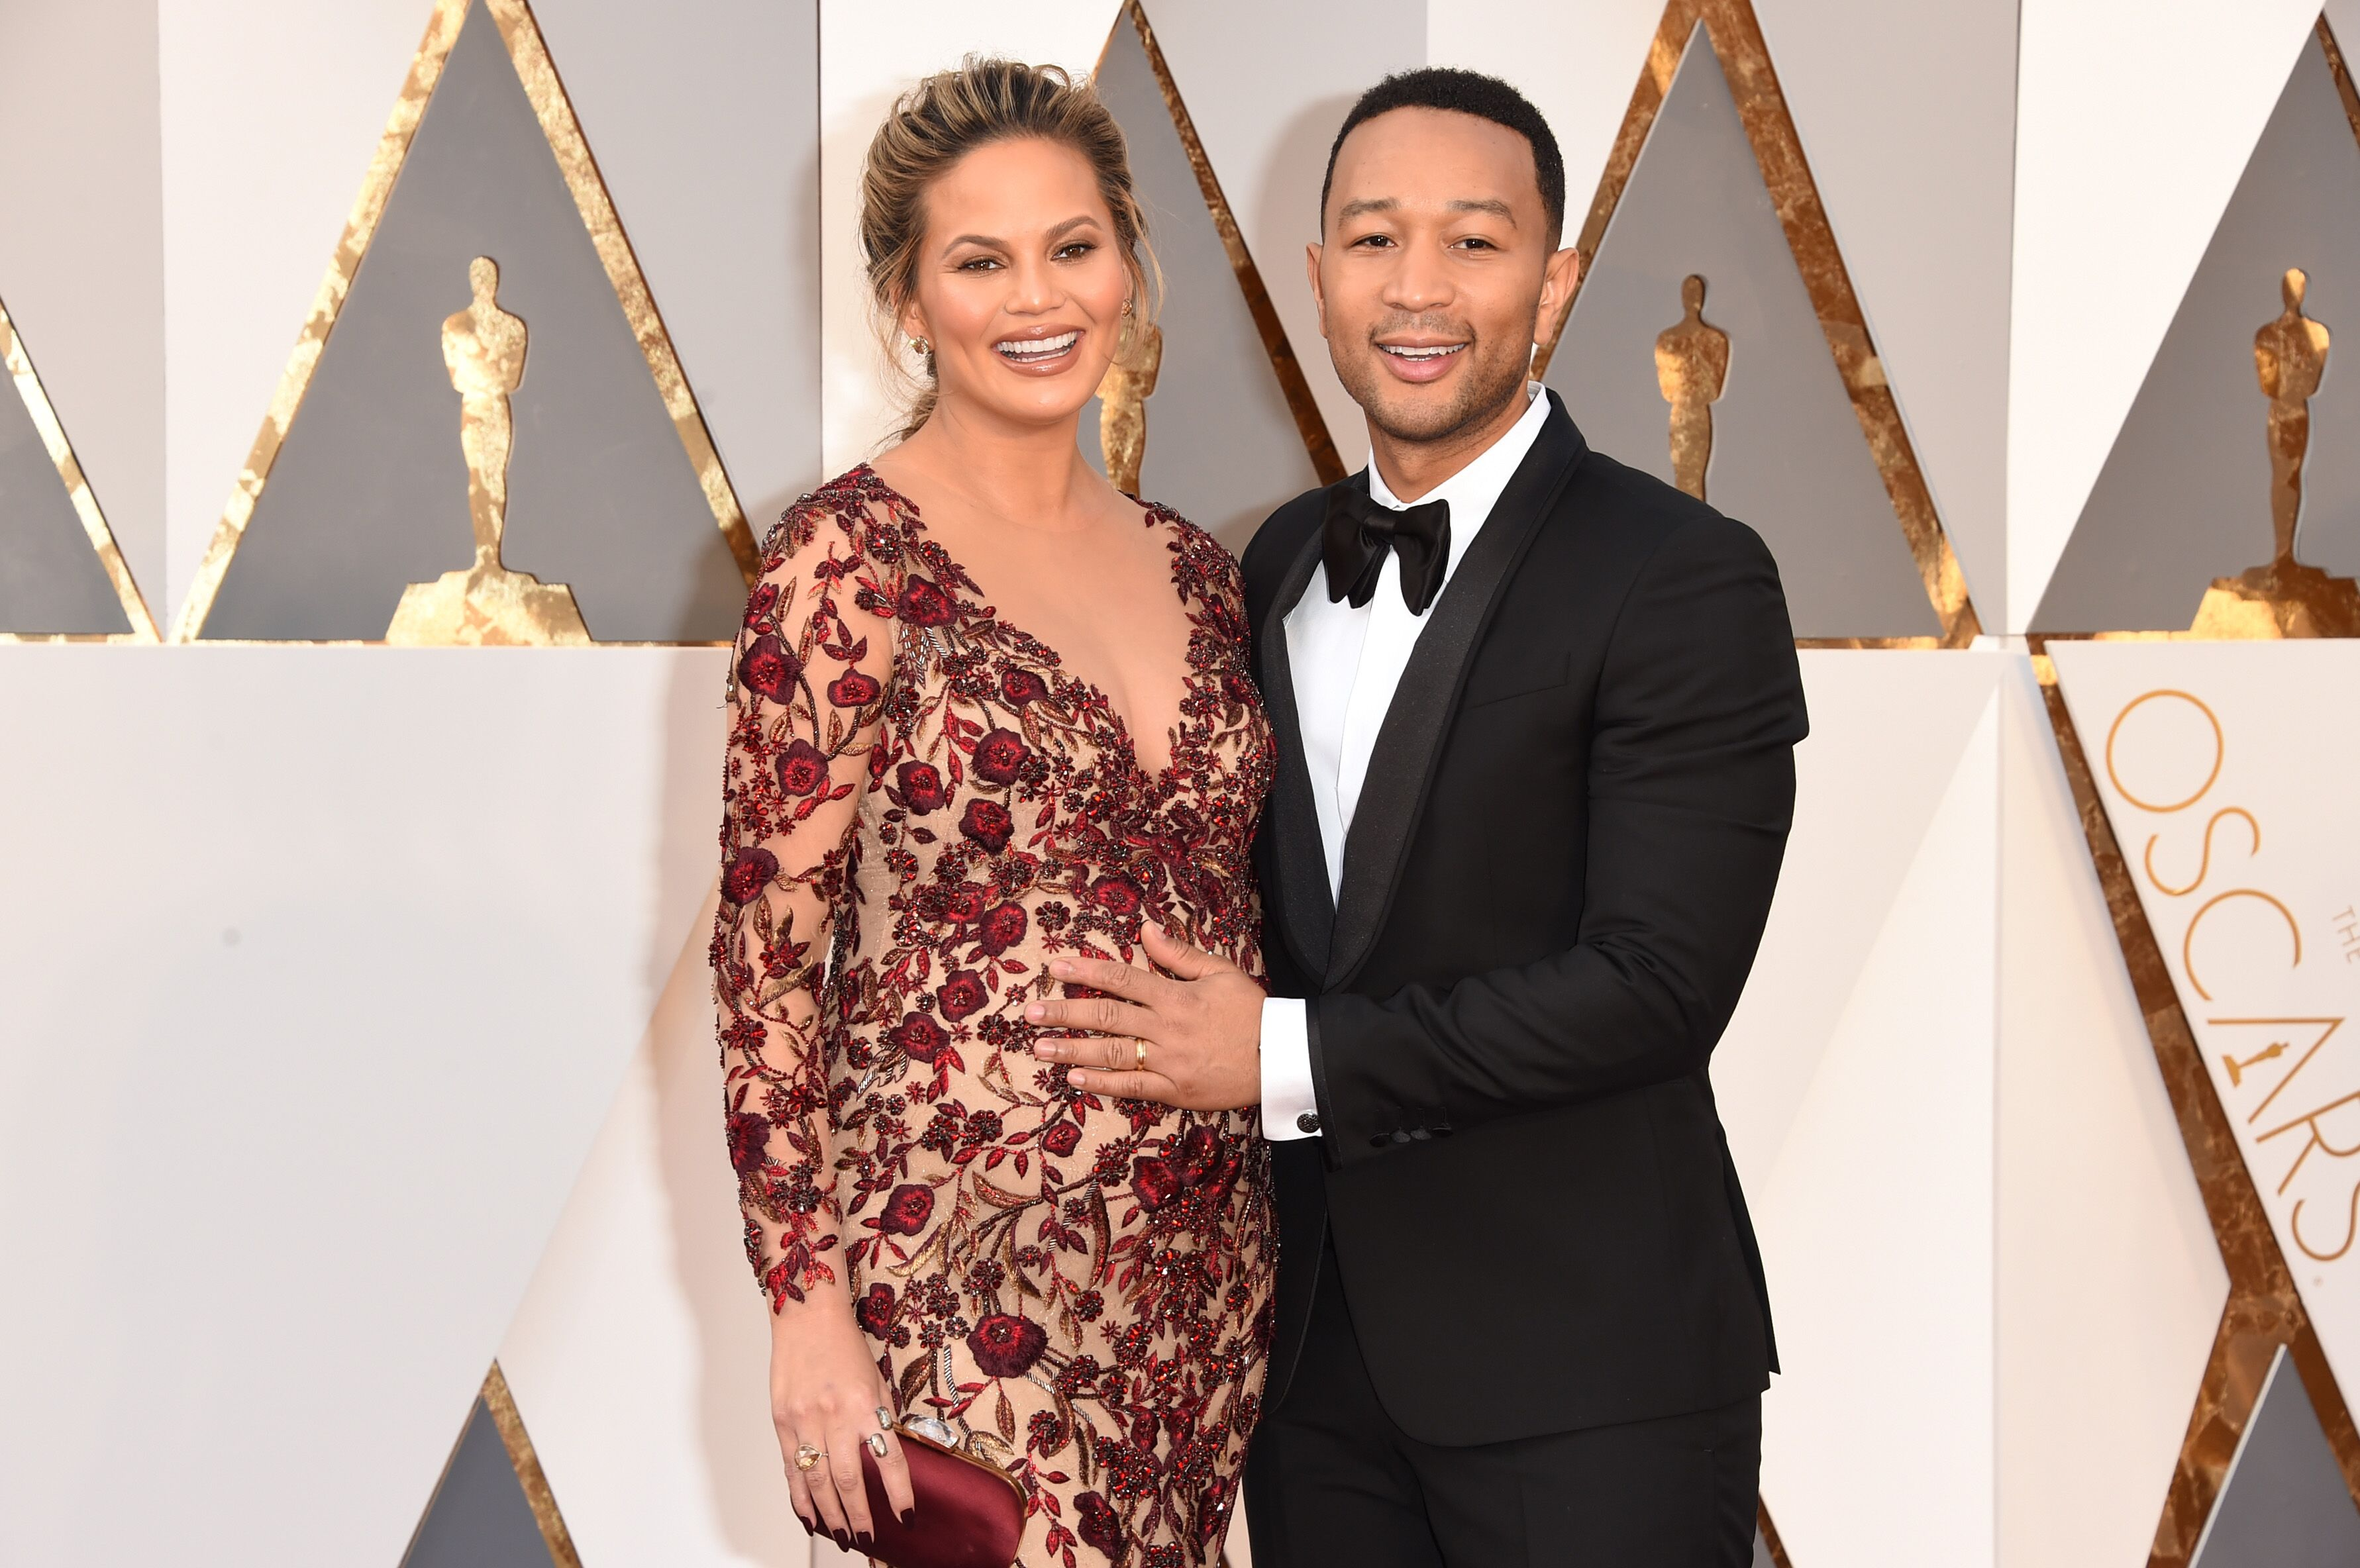 Model Chrissy Teigen (L) and recording artist John Legend attend the 88th Annual Academy Awards at Hollywood & Highland Center on February 28, 2016 in Hollywood, California | Photo: Getty Images